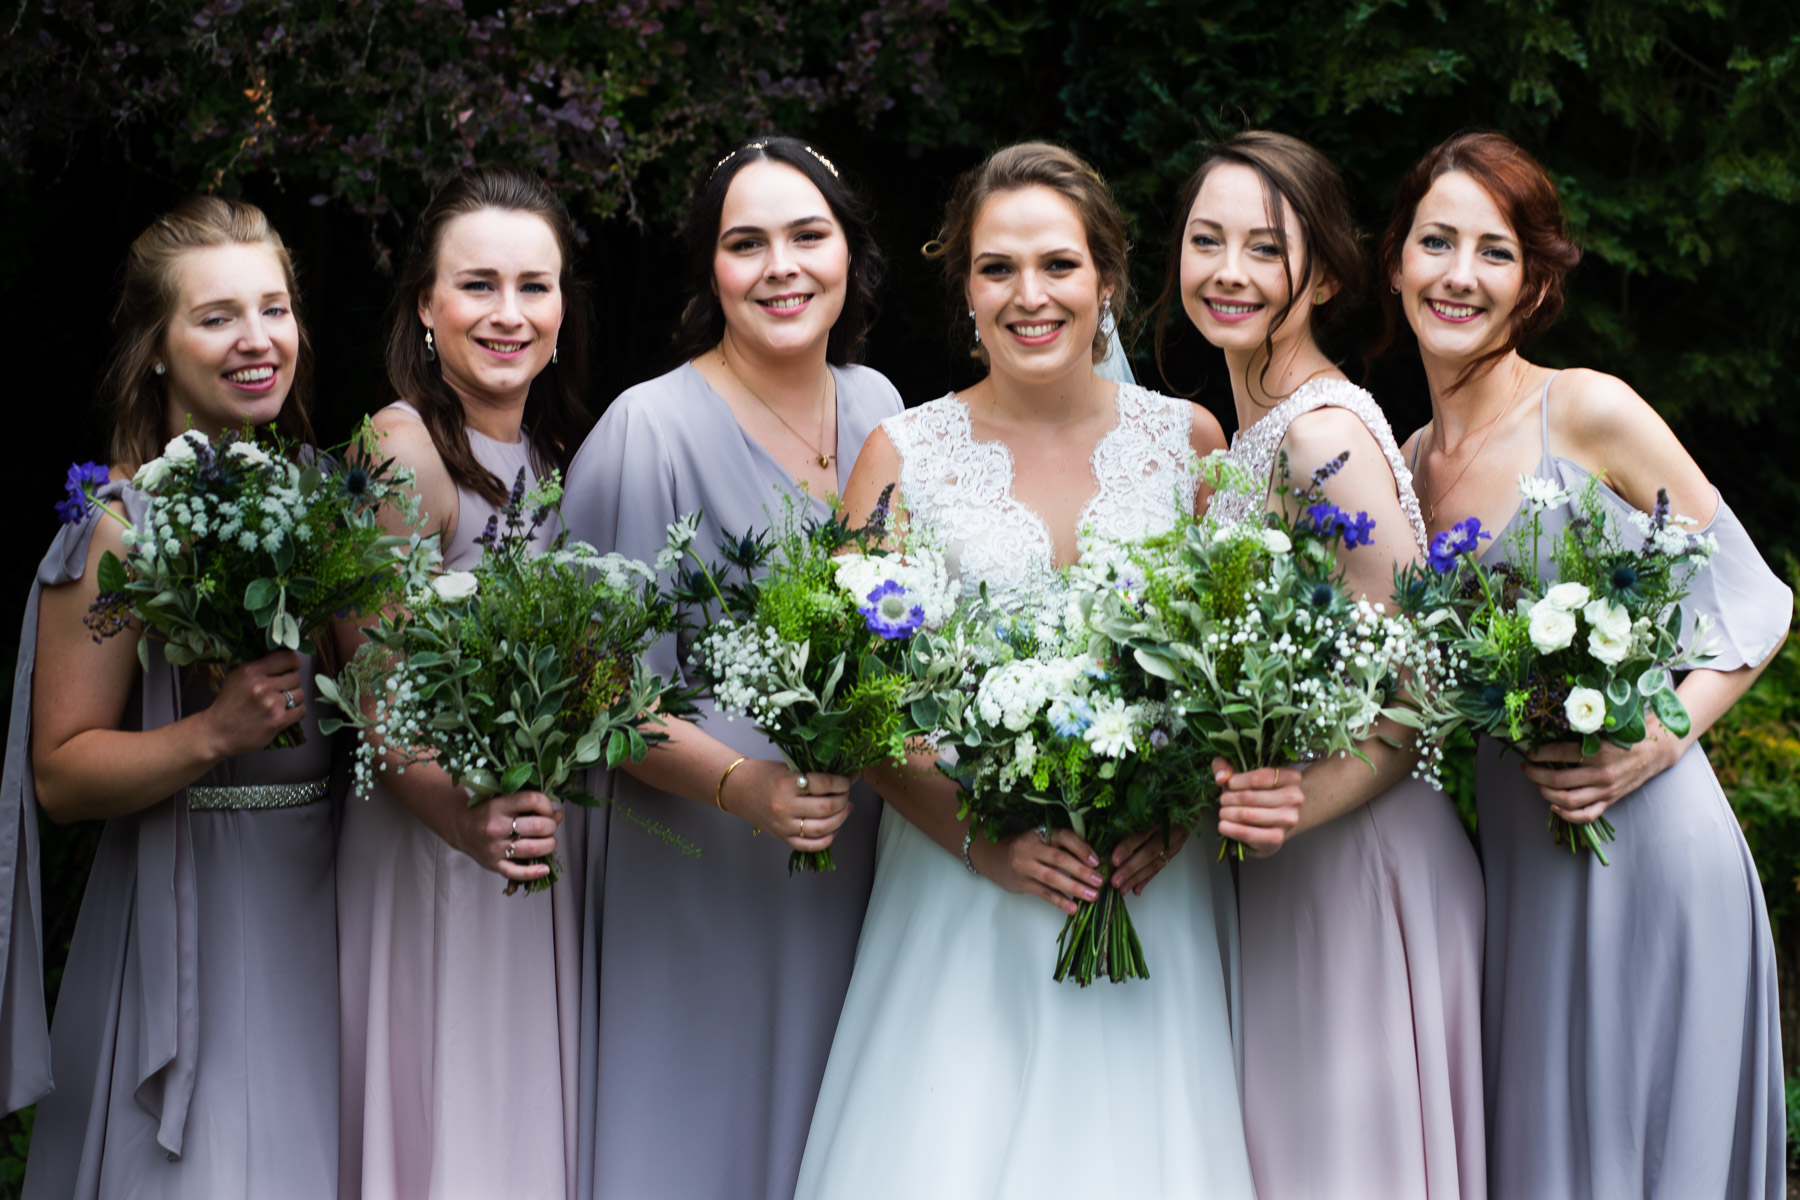 Relax photo of wedding bride with her bridesmaids